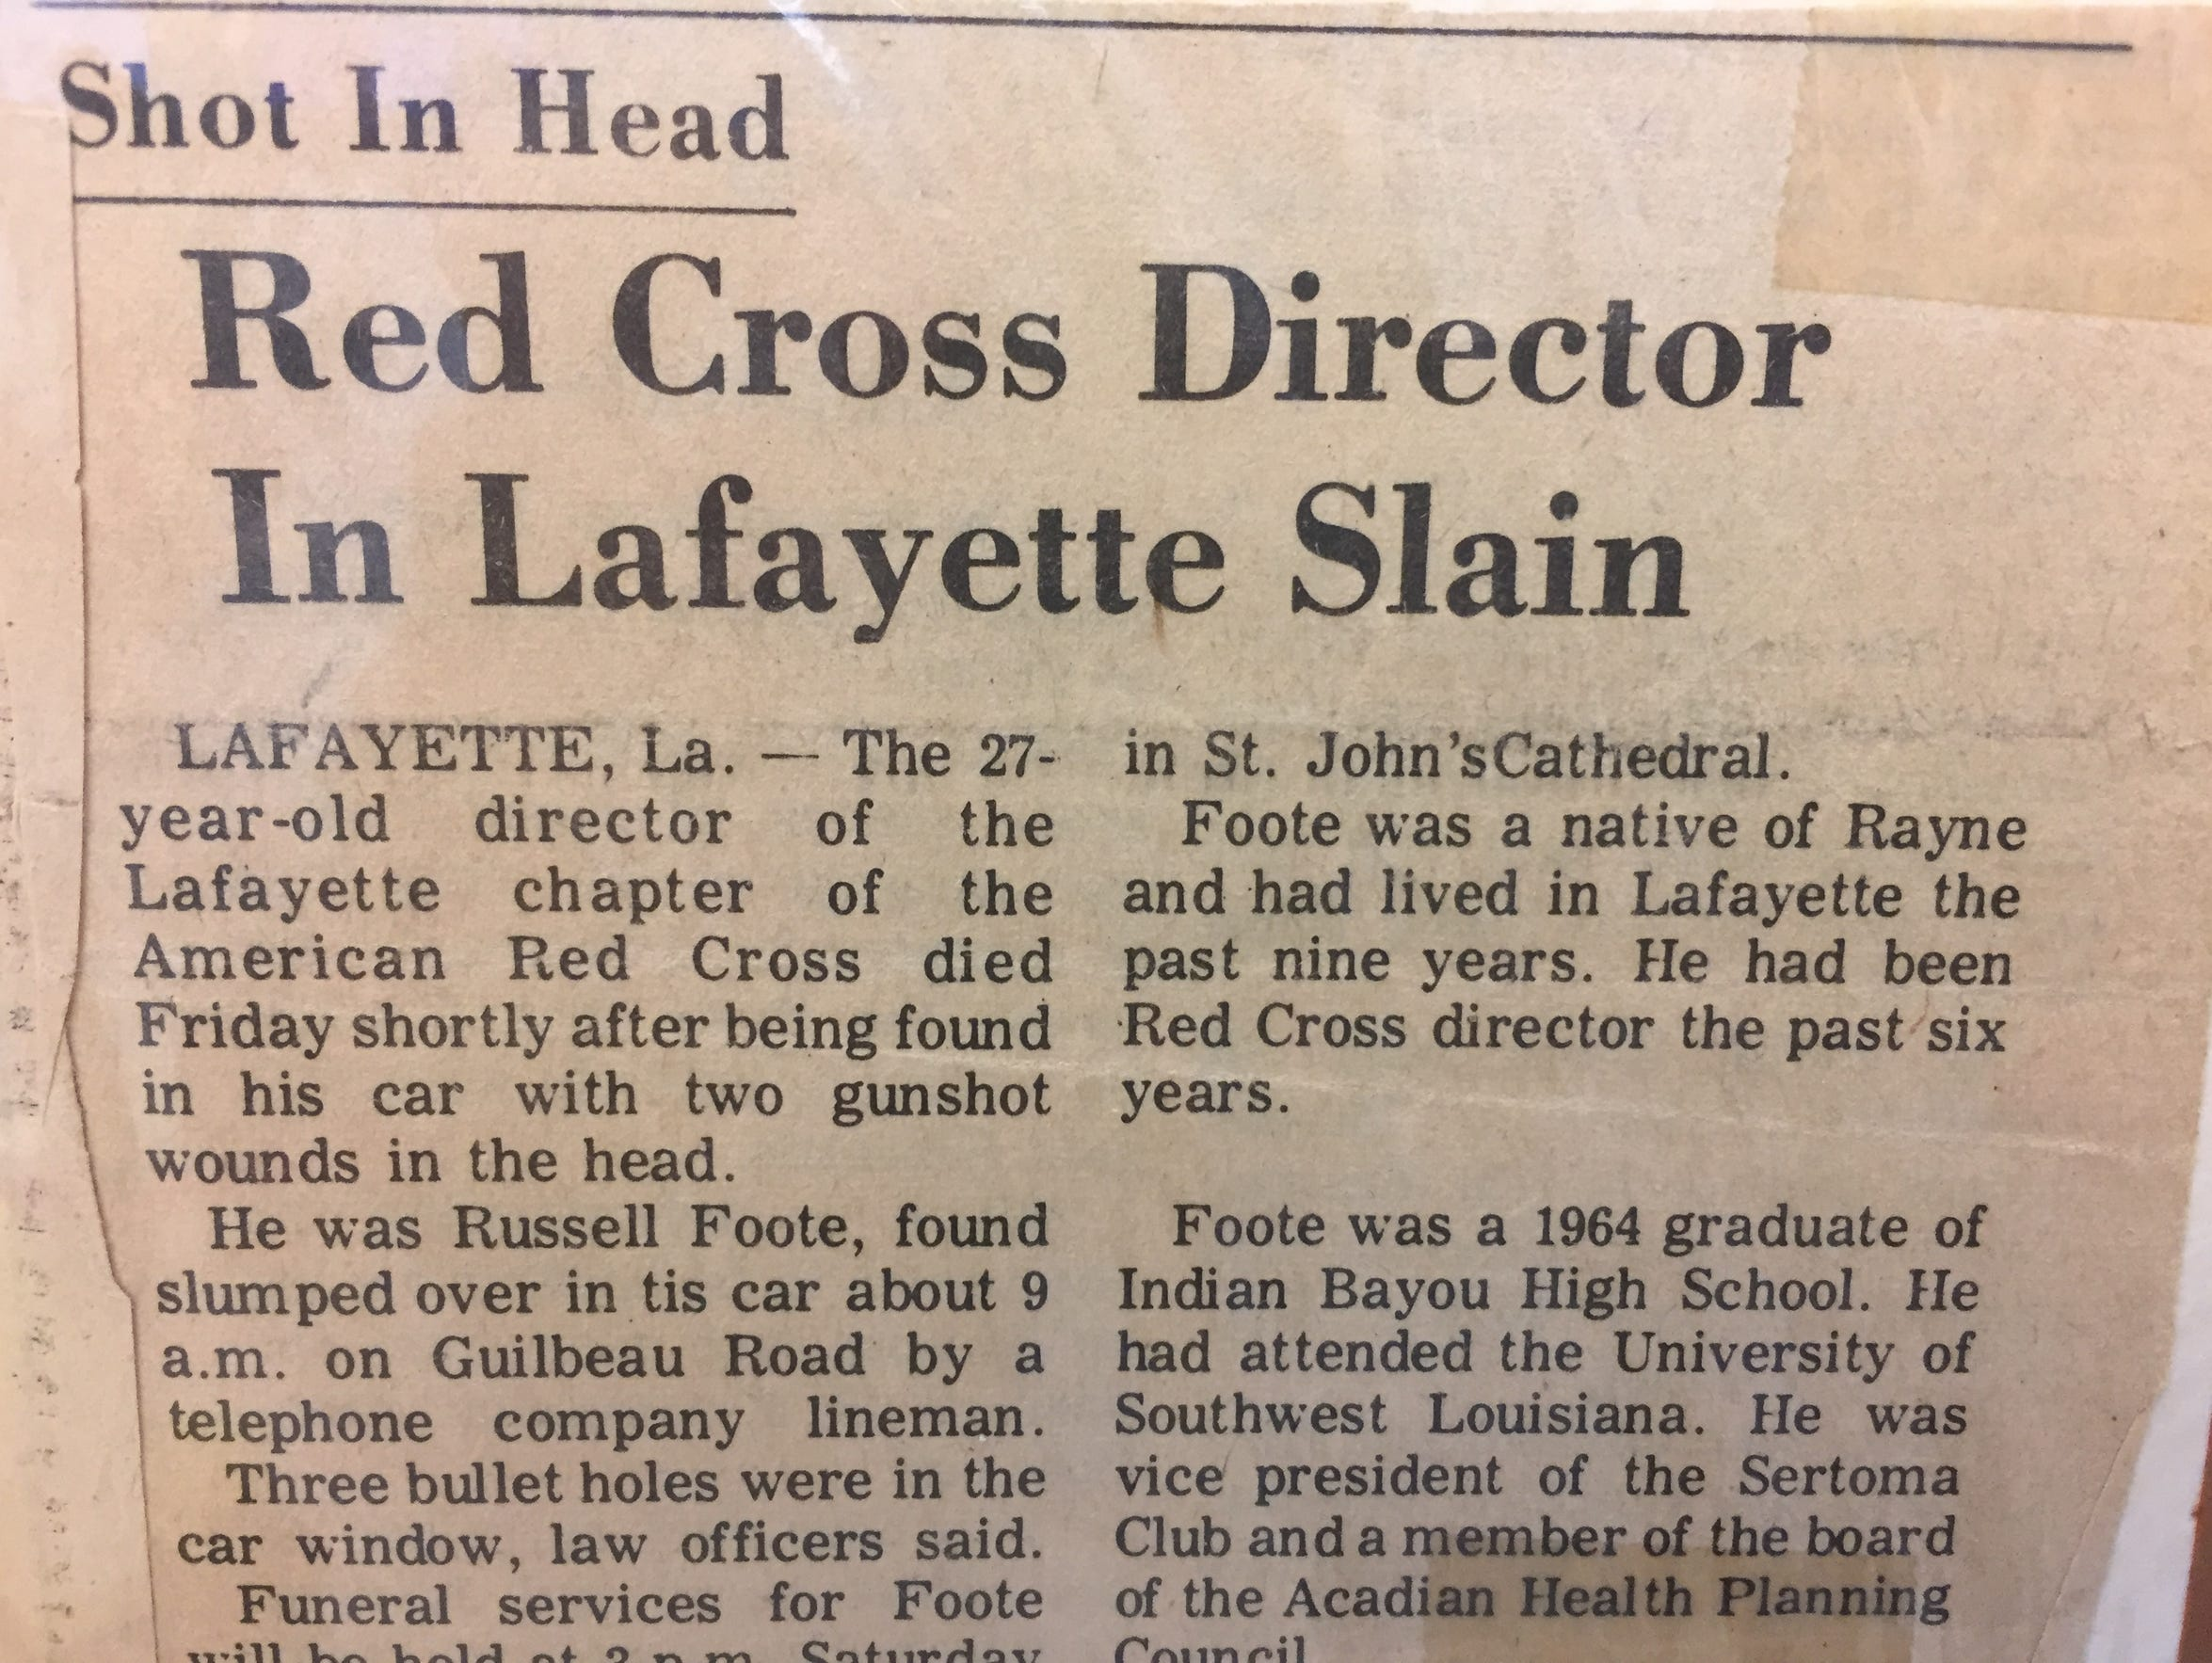 A 1974 newspaper article in The Daily Advertiser details